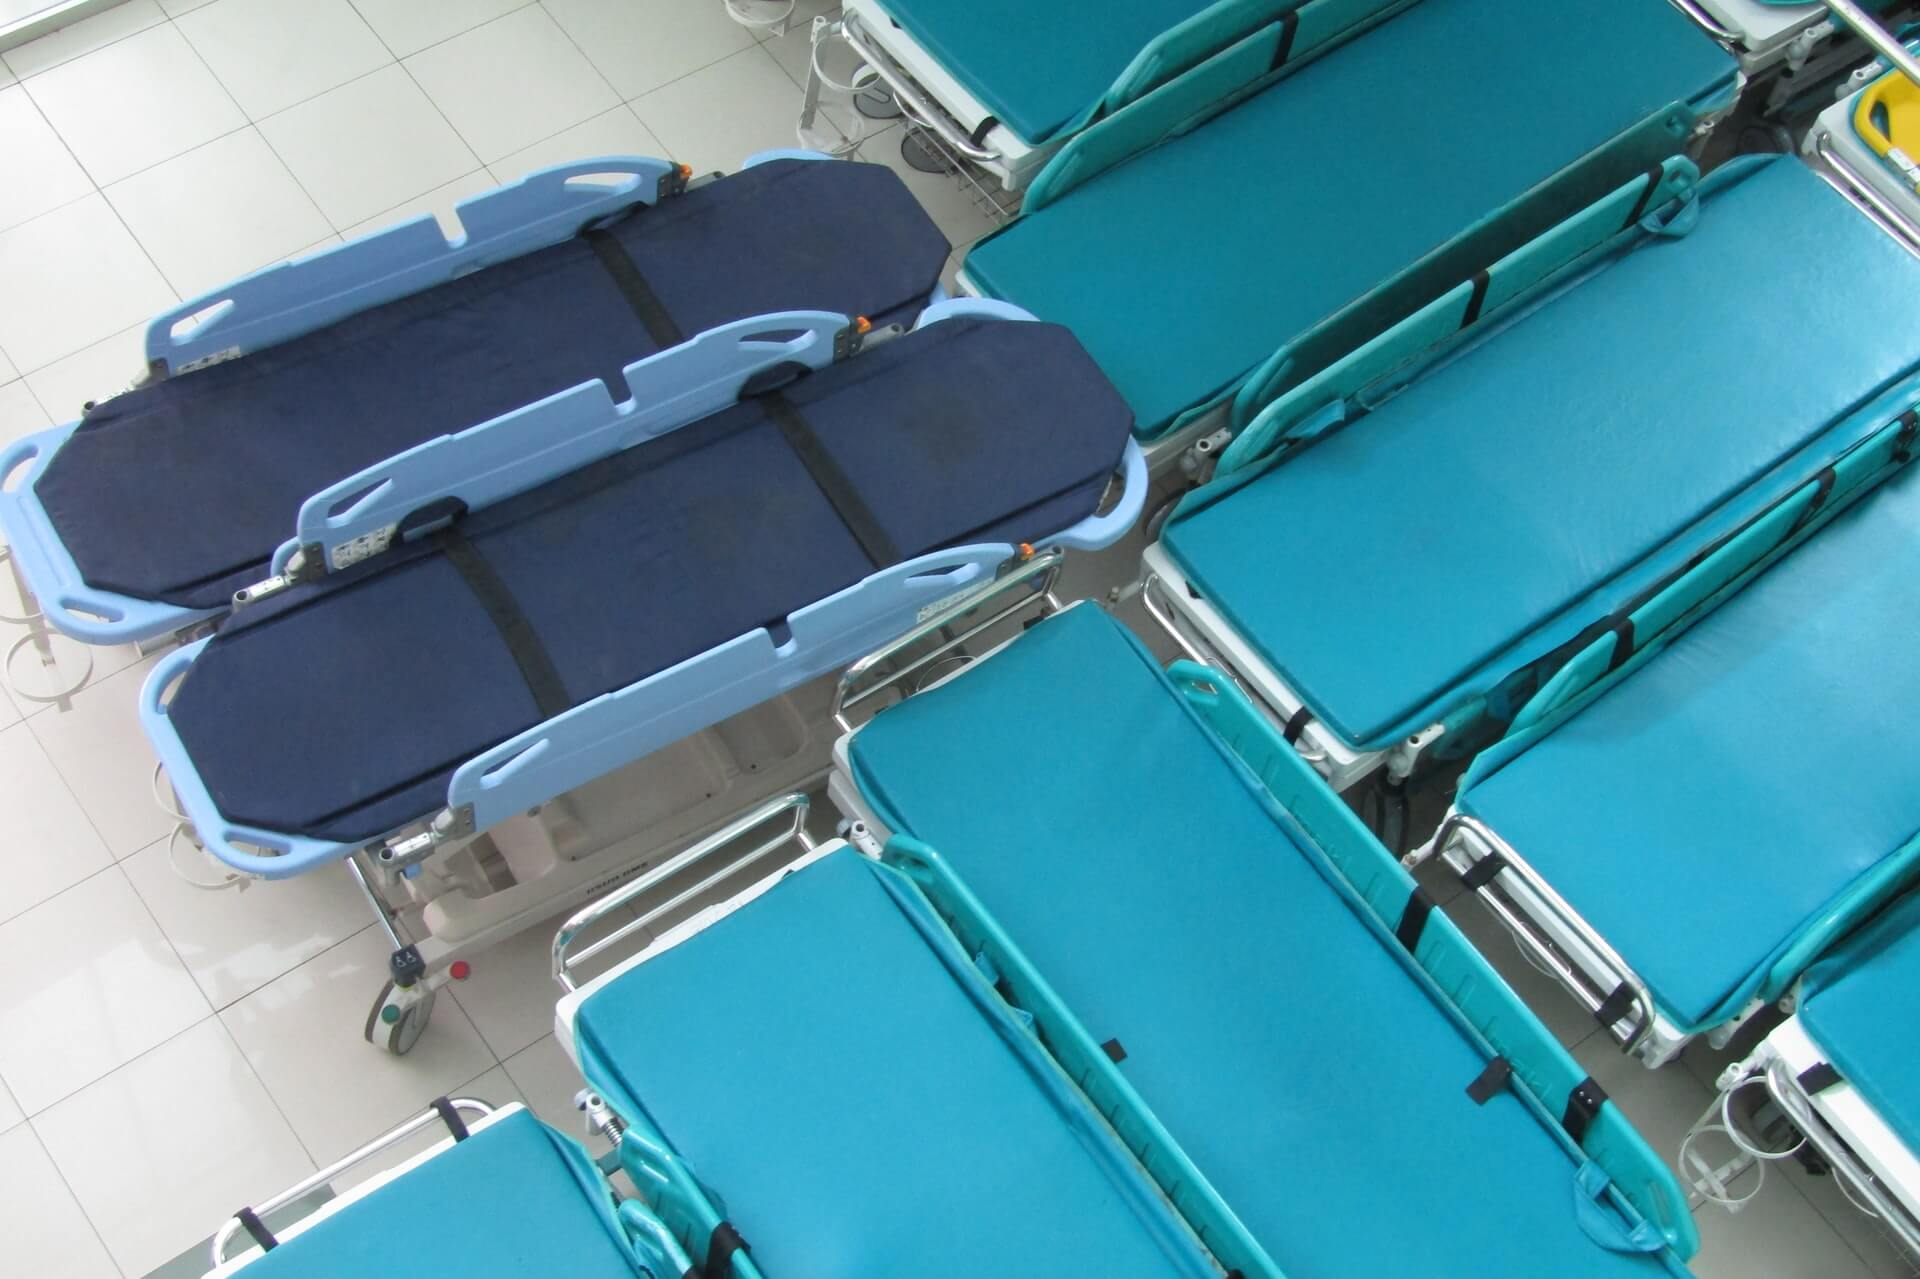 Empty hospital beds gathered in one place